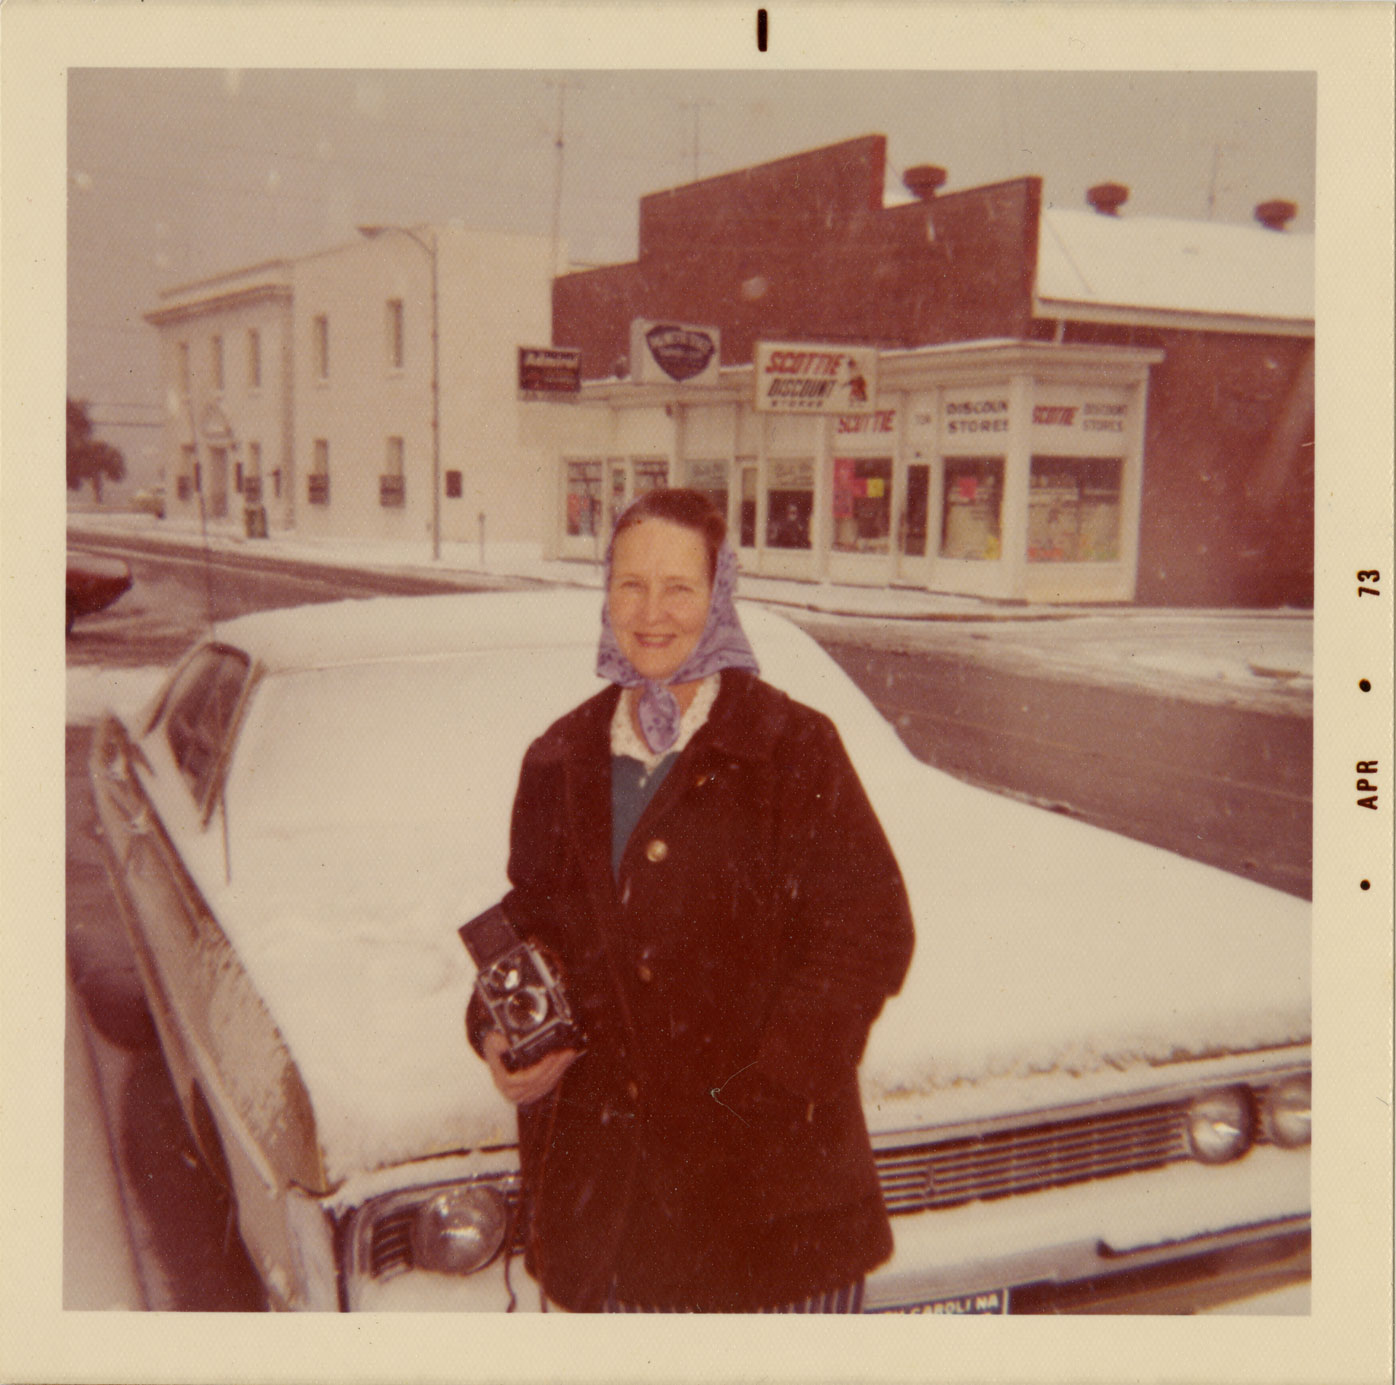 Lucille Culp with her camera on Bay Street after the snowfall